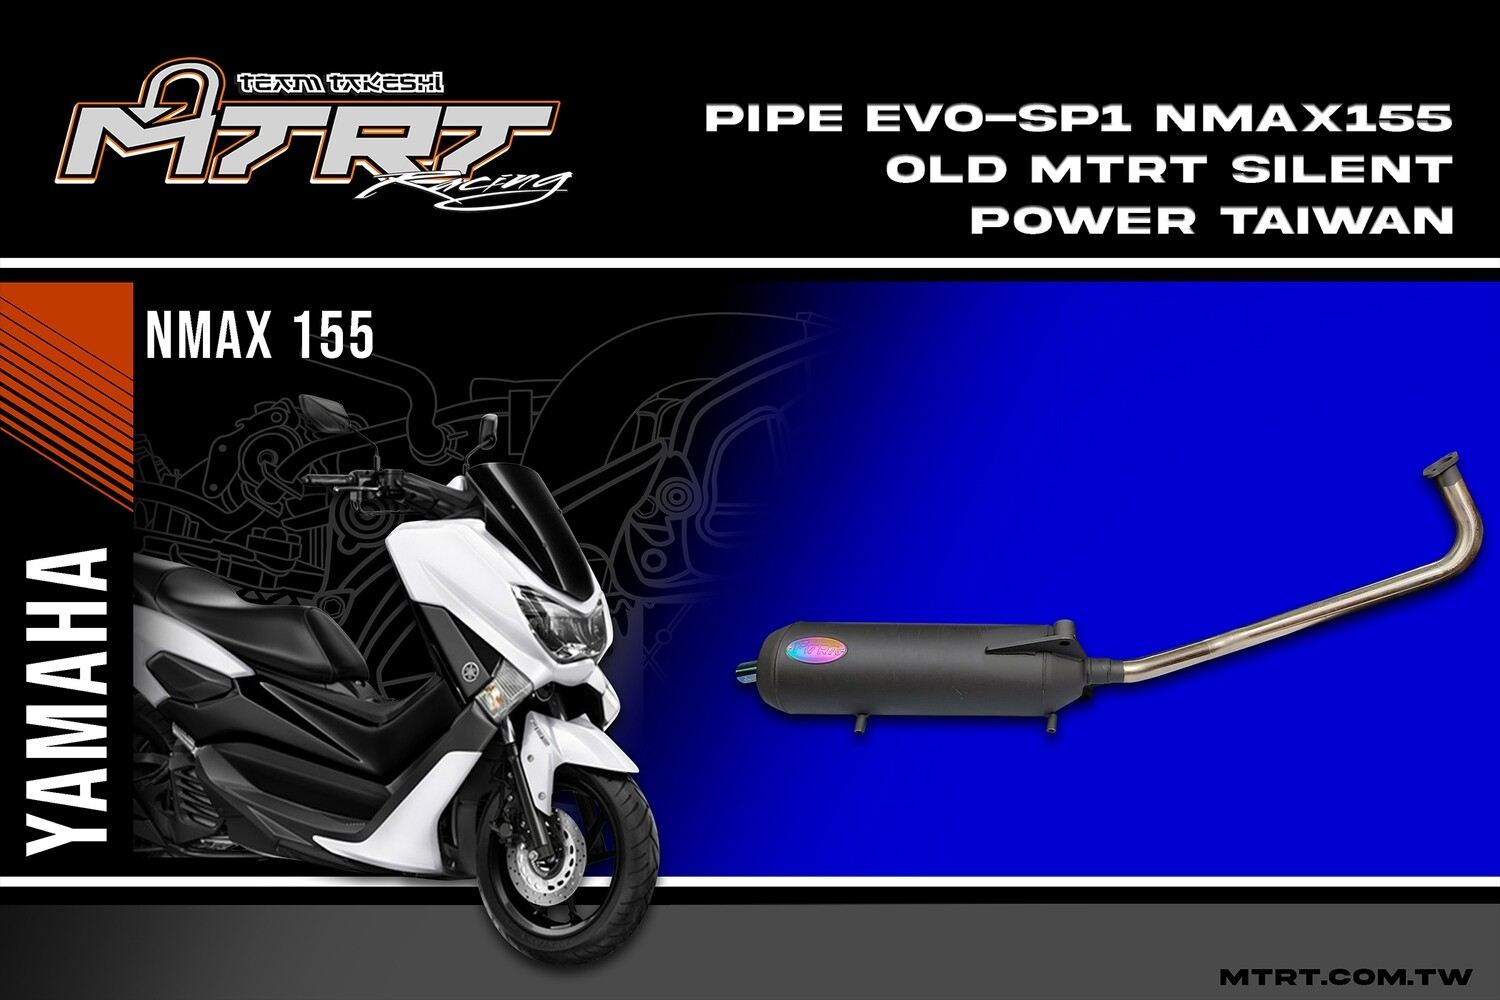 PIPE EVO-SP1 NMAX155 Old MTRT SILENT POWER TAIWAN